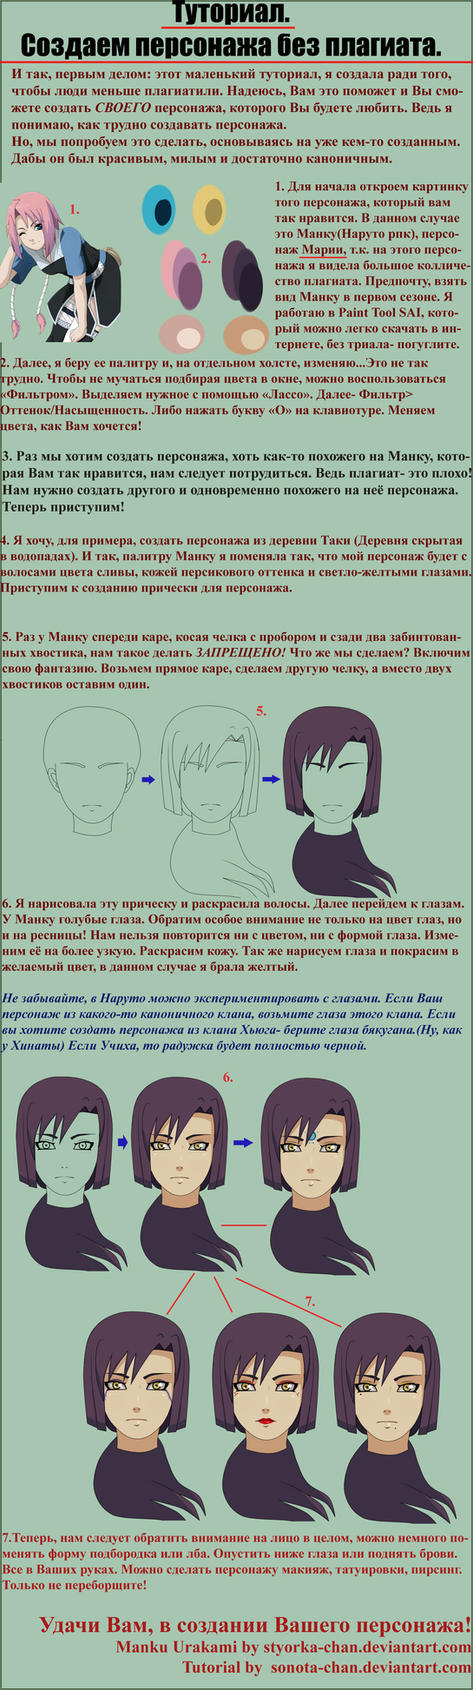 +Tutorial on creation of the character+ by Sonota-chan